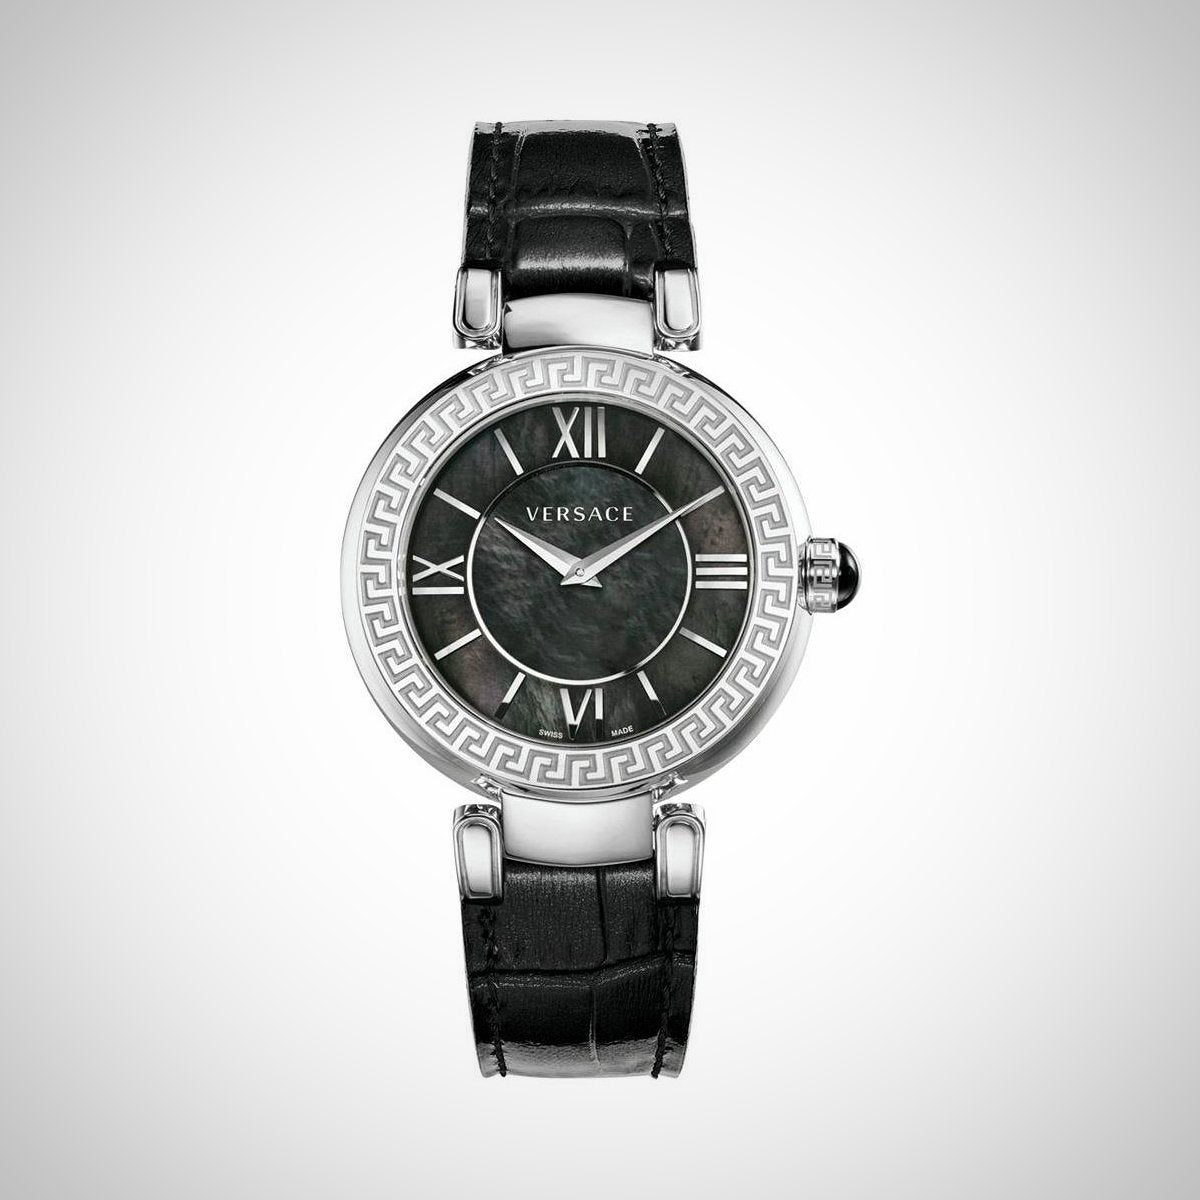 Versace Leda VNC010014 Ladies Black Leather Strap Swiss Watch